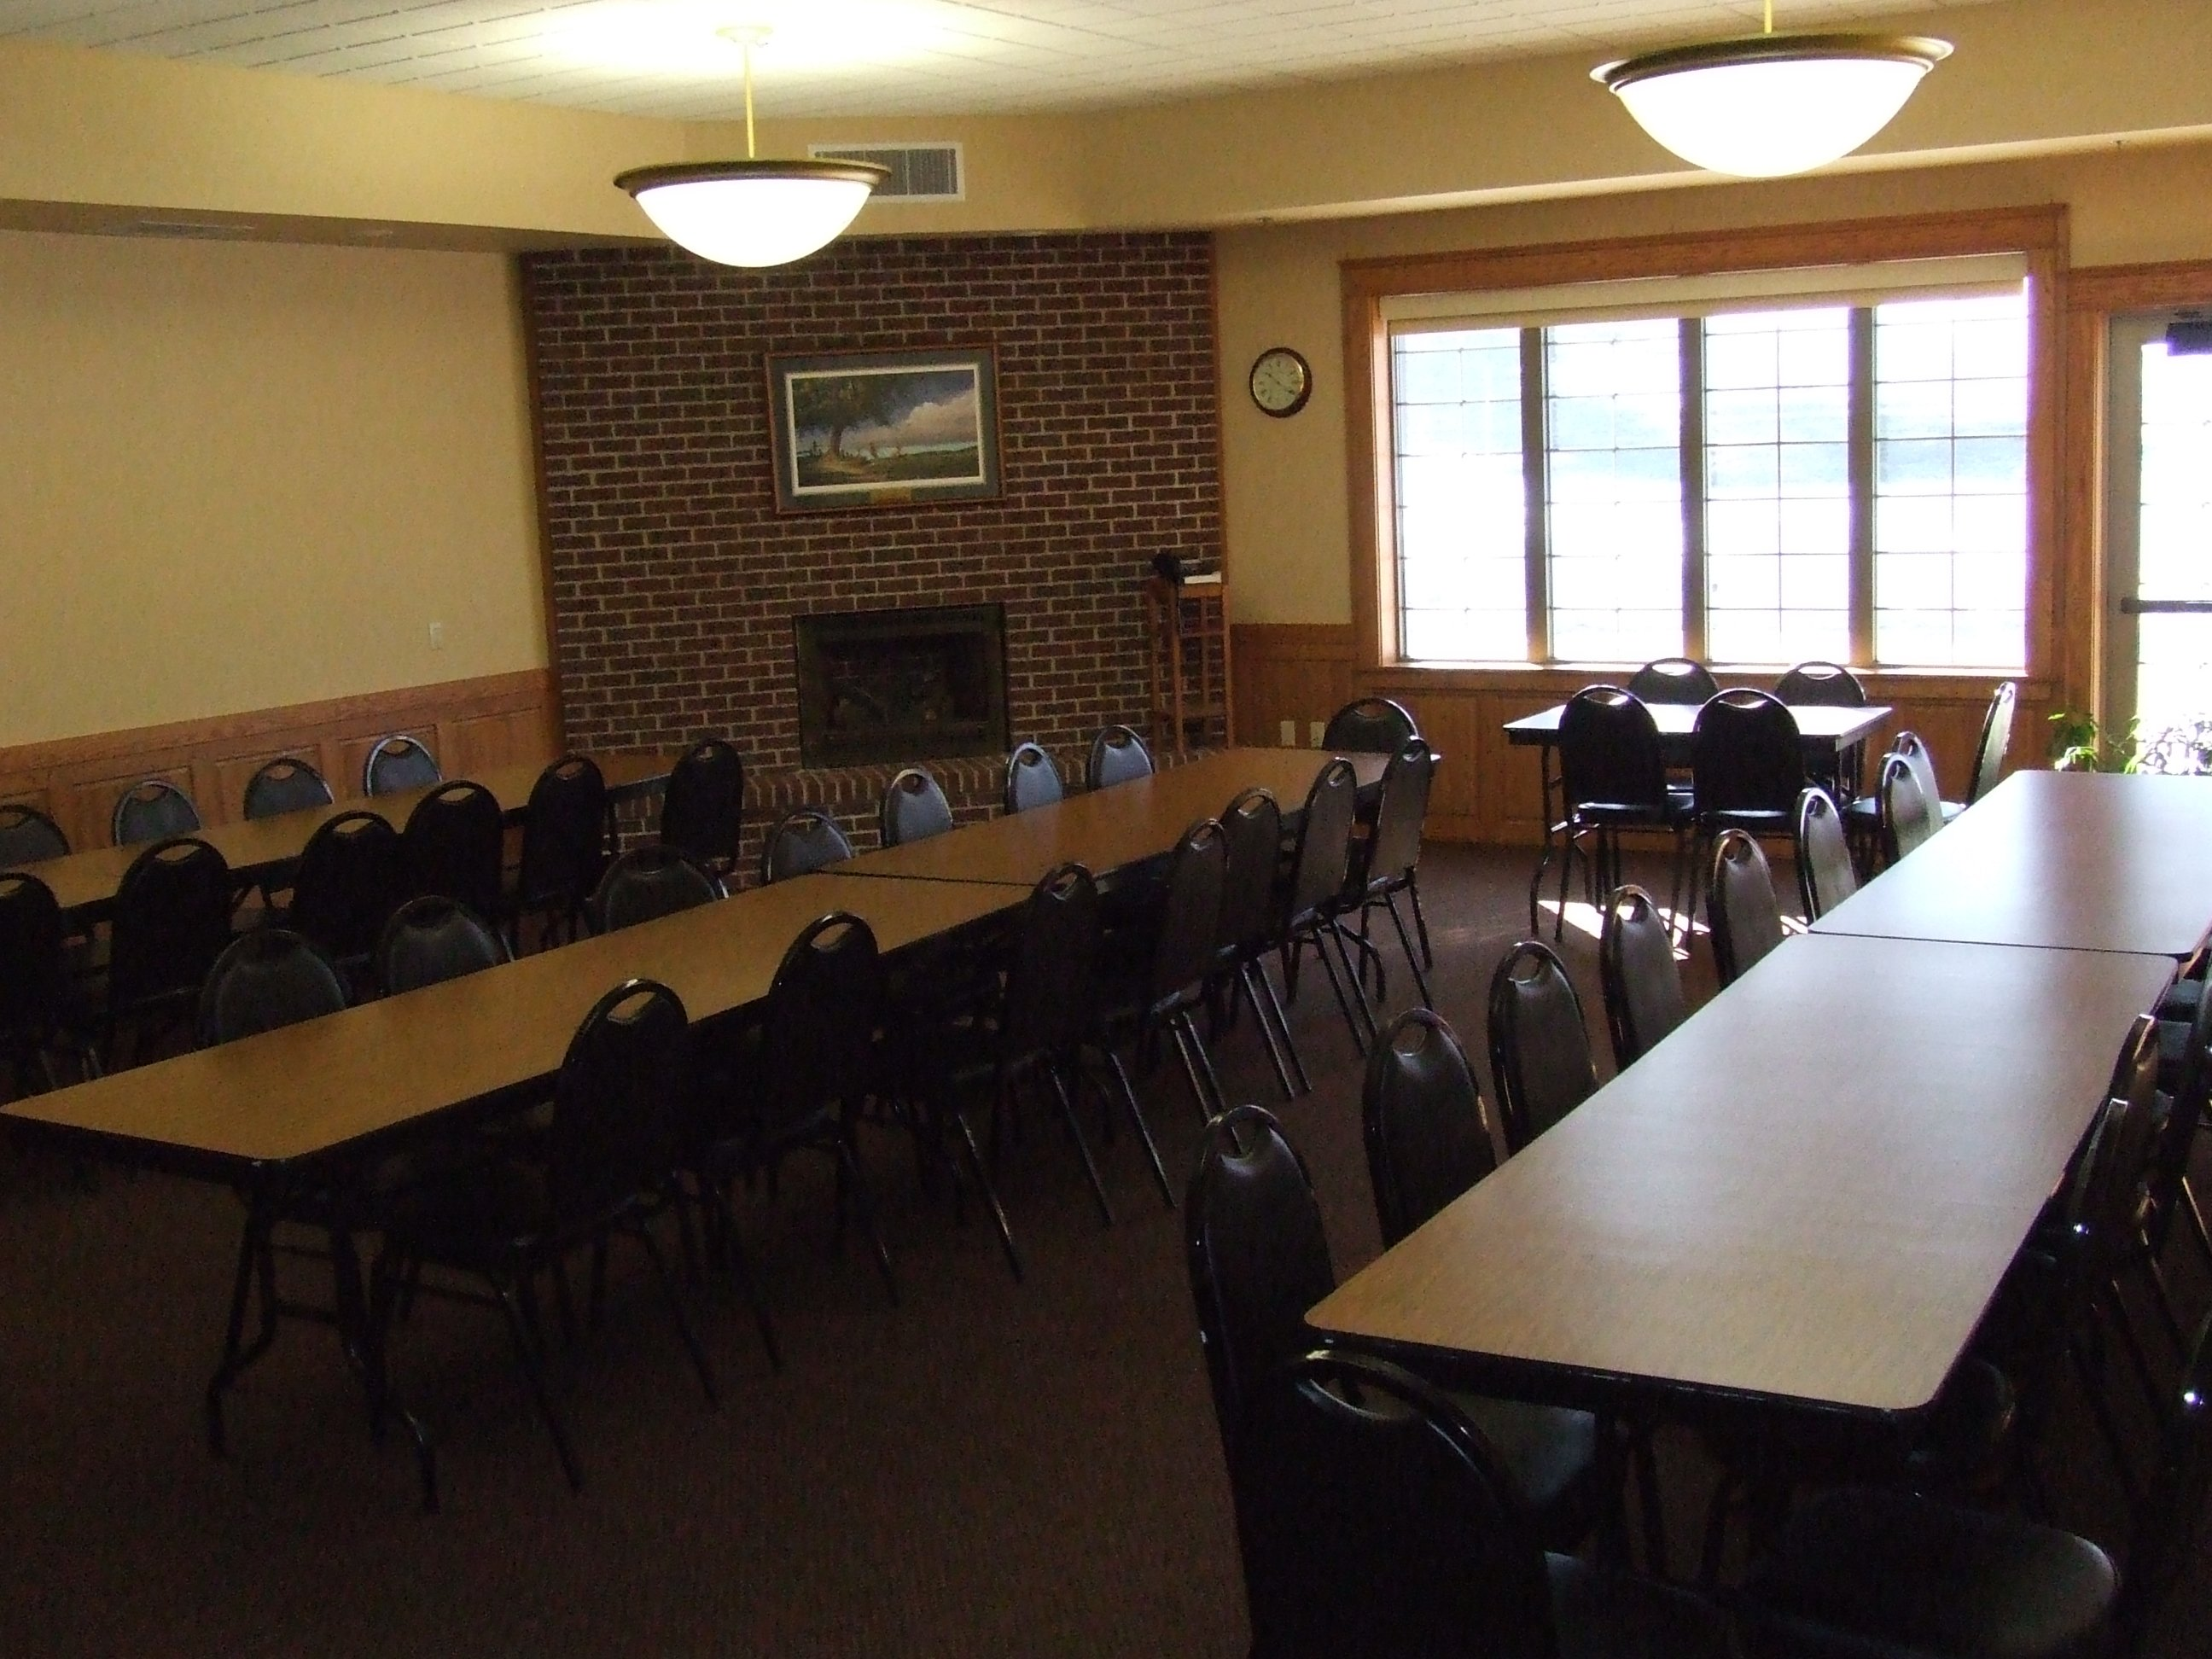 Sprague Room with tables in row configuration